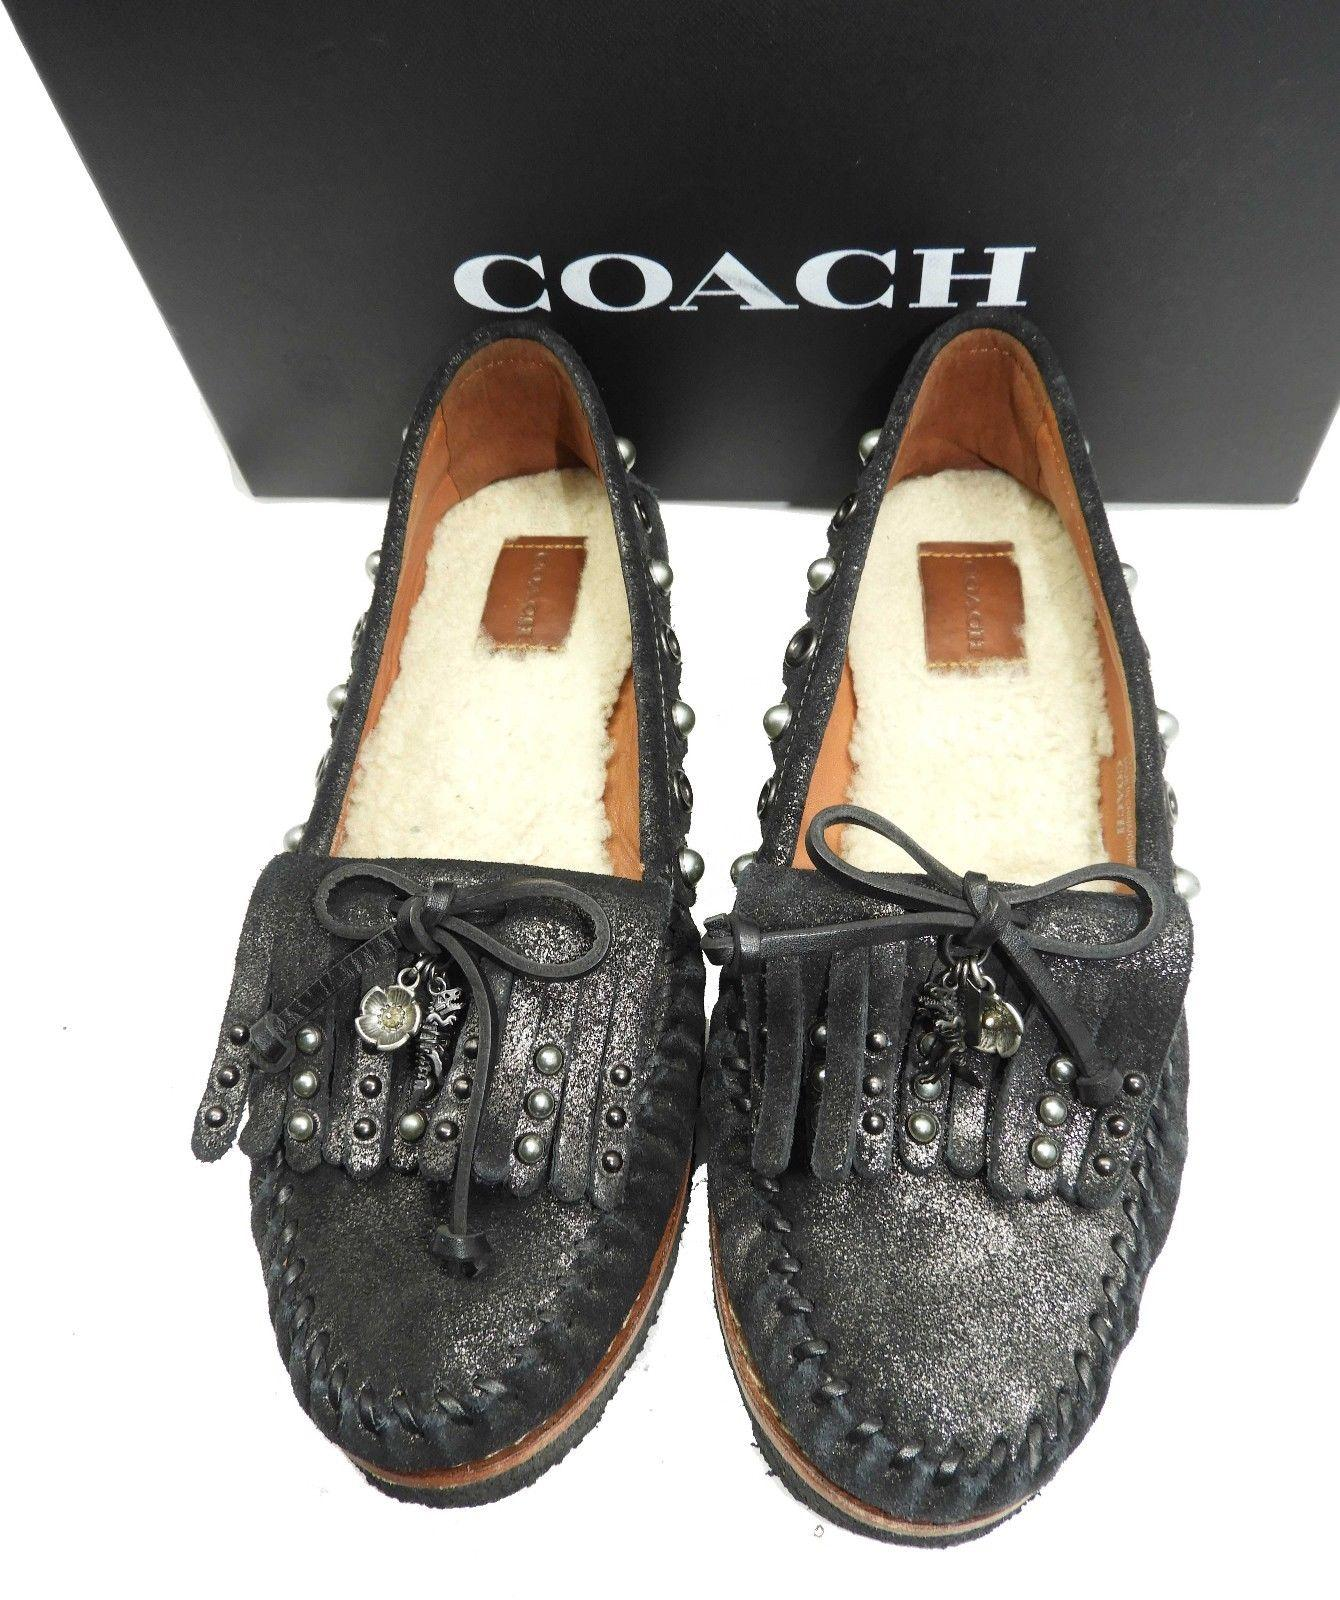 Coach Roccasin Embellished Charms Fringes Suede Moccasin Women Shoes Comfort 8 - Click Image to Close